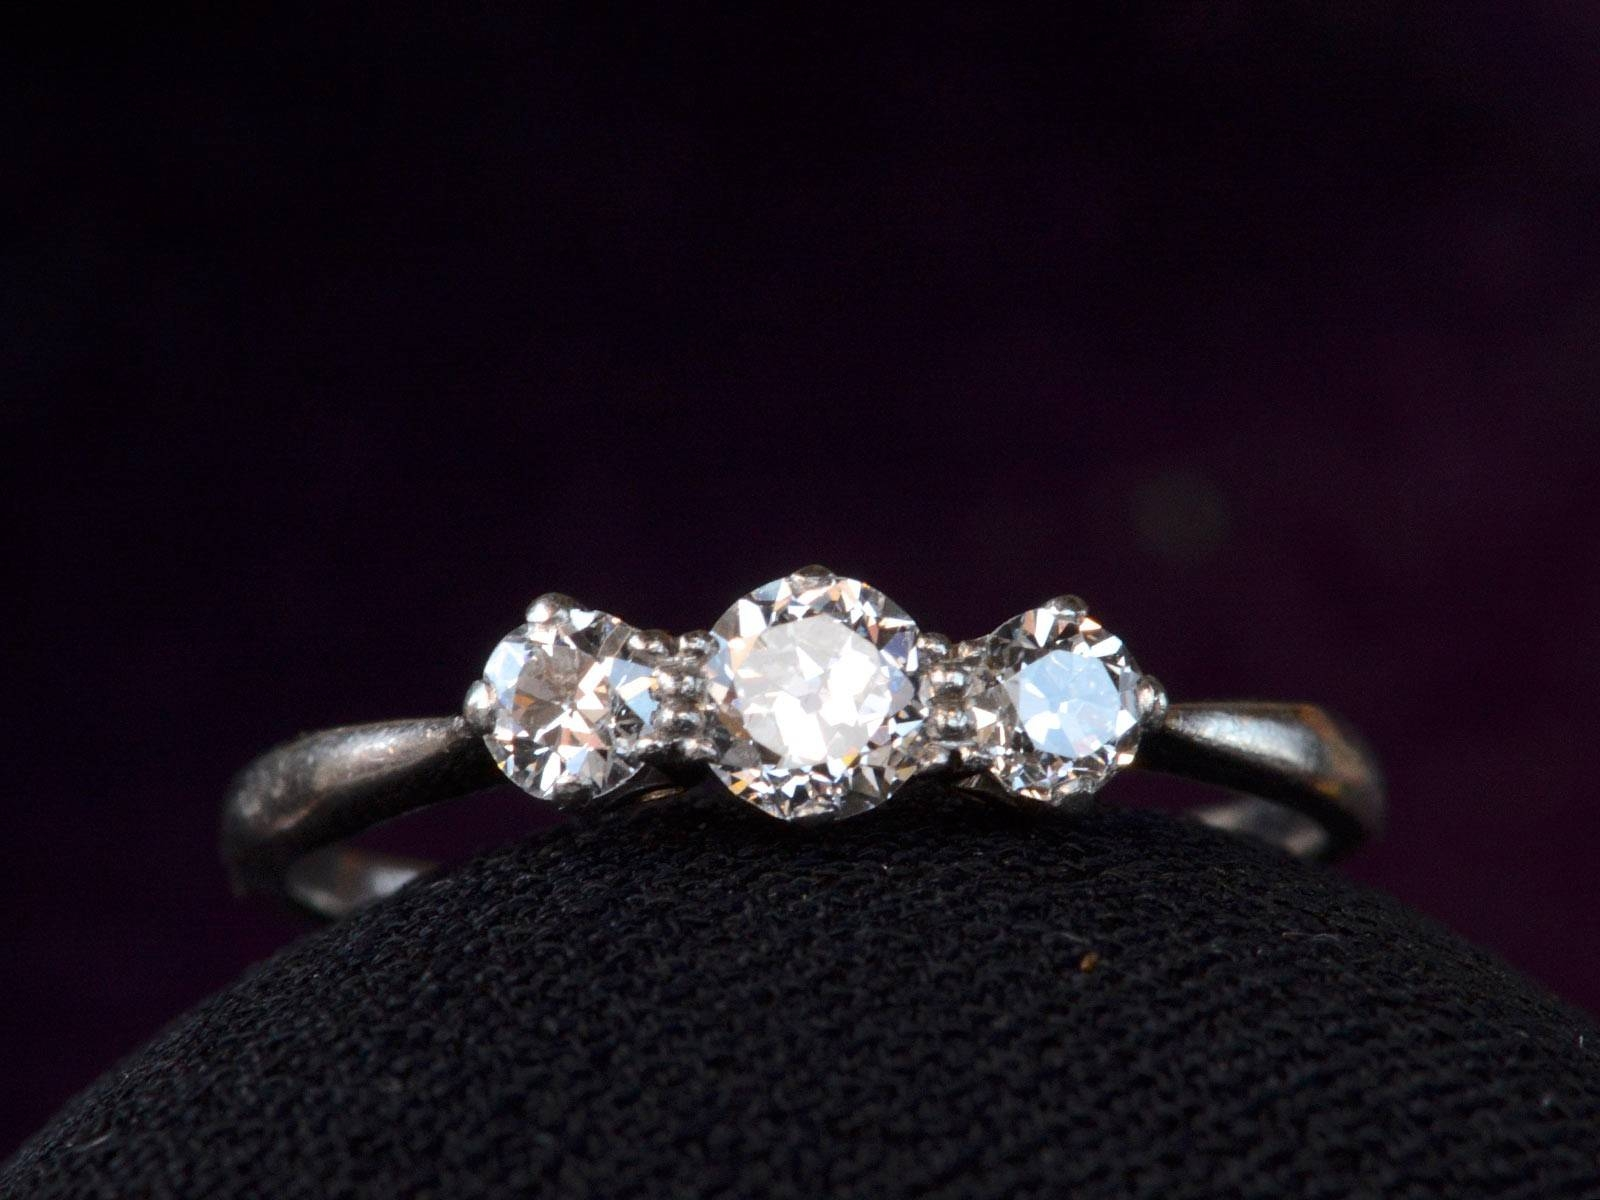 jewelry ring eng english montreal rose rings engagement ipv diamond